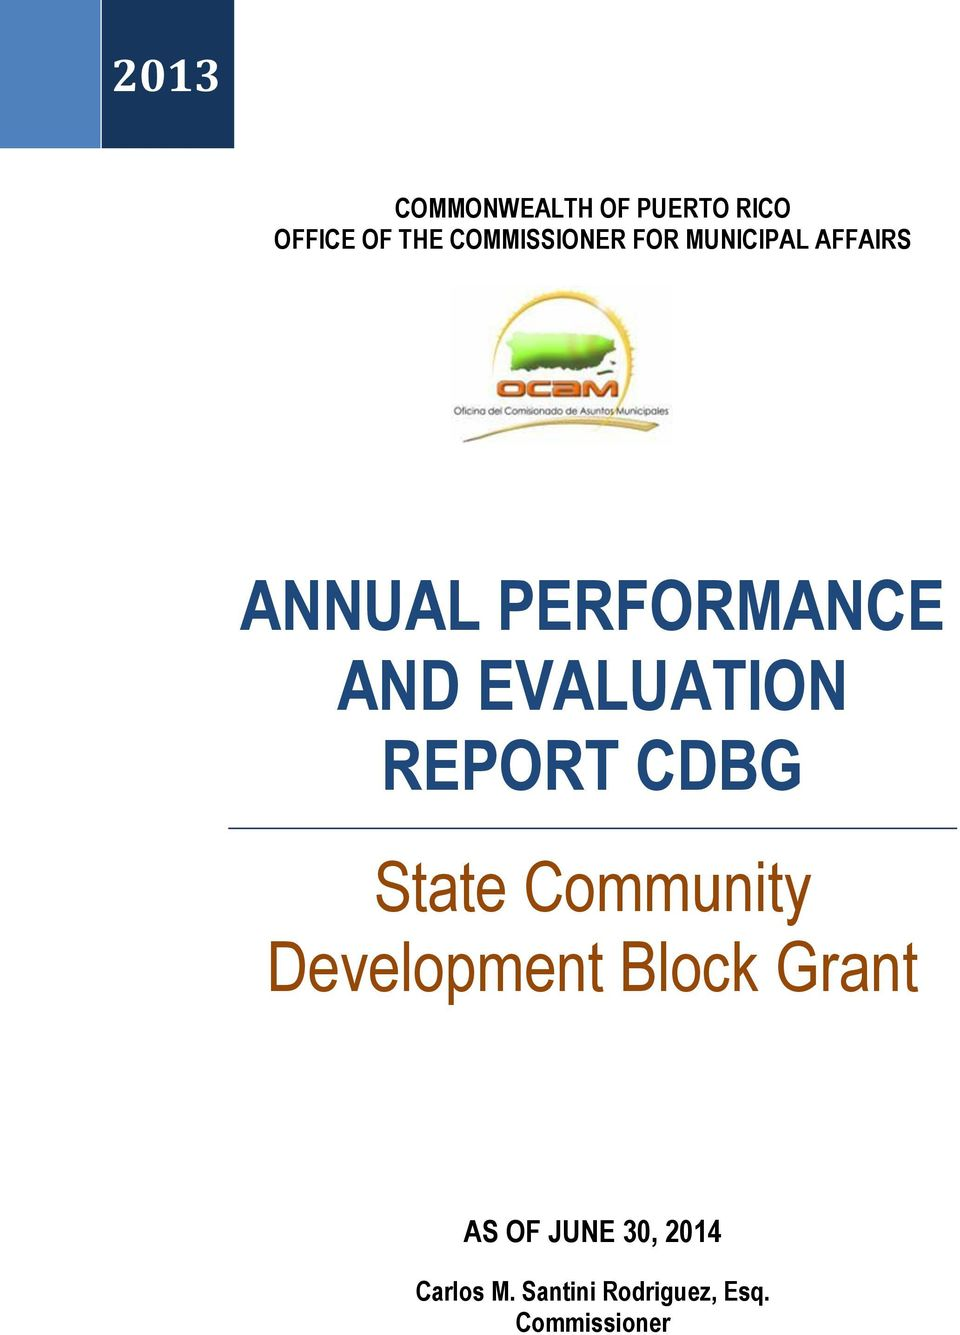 AND EVALUATION REPORT CDBG State Community